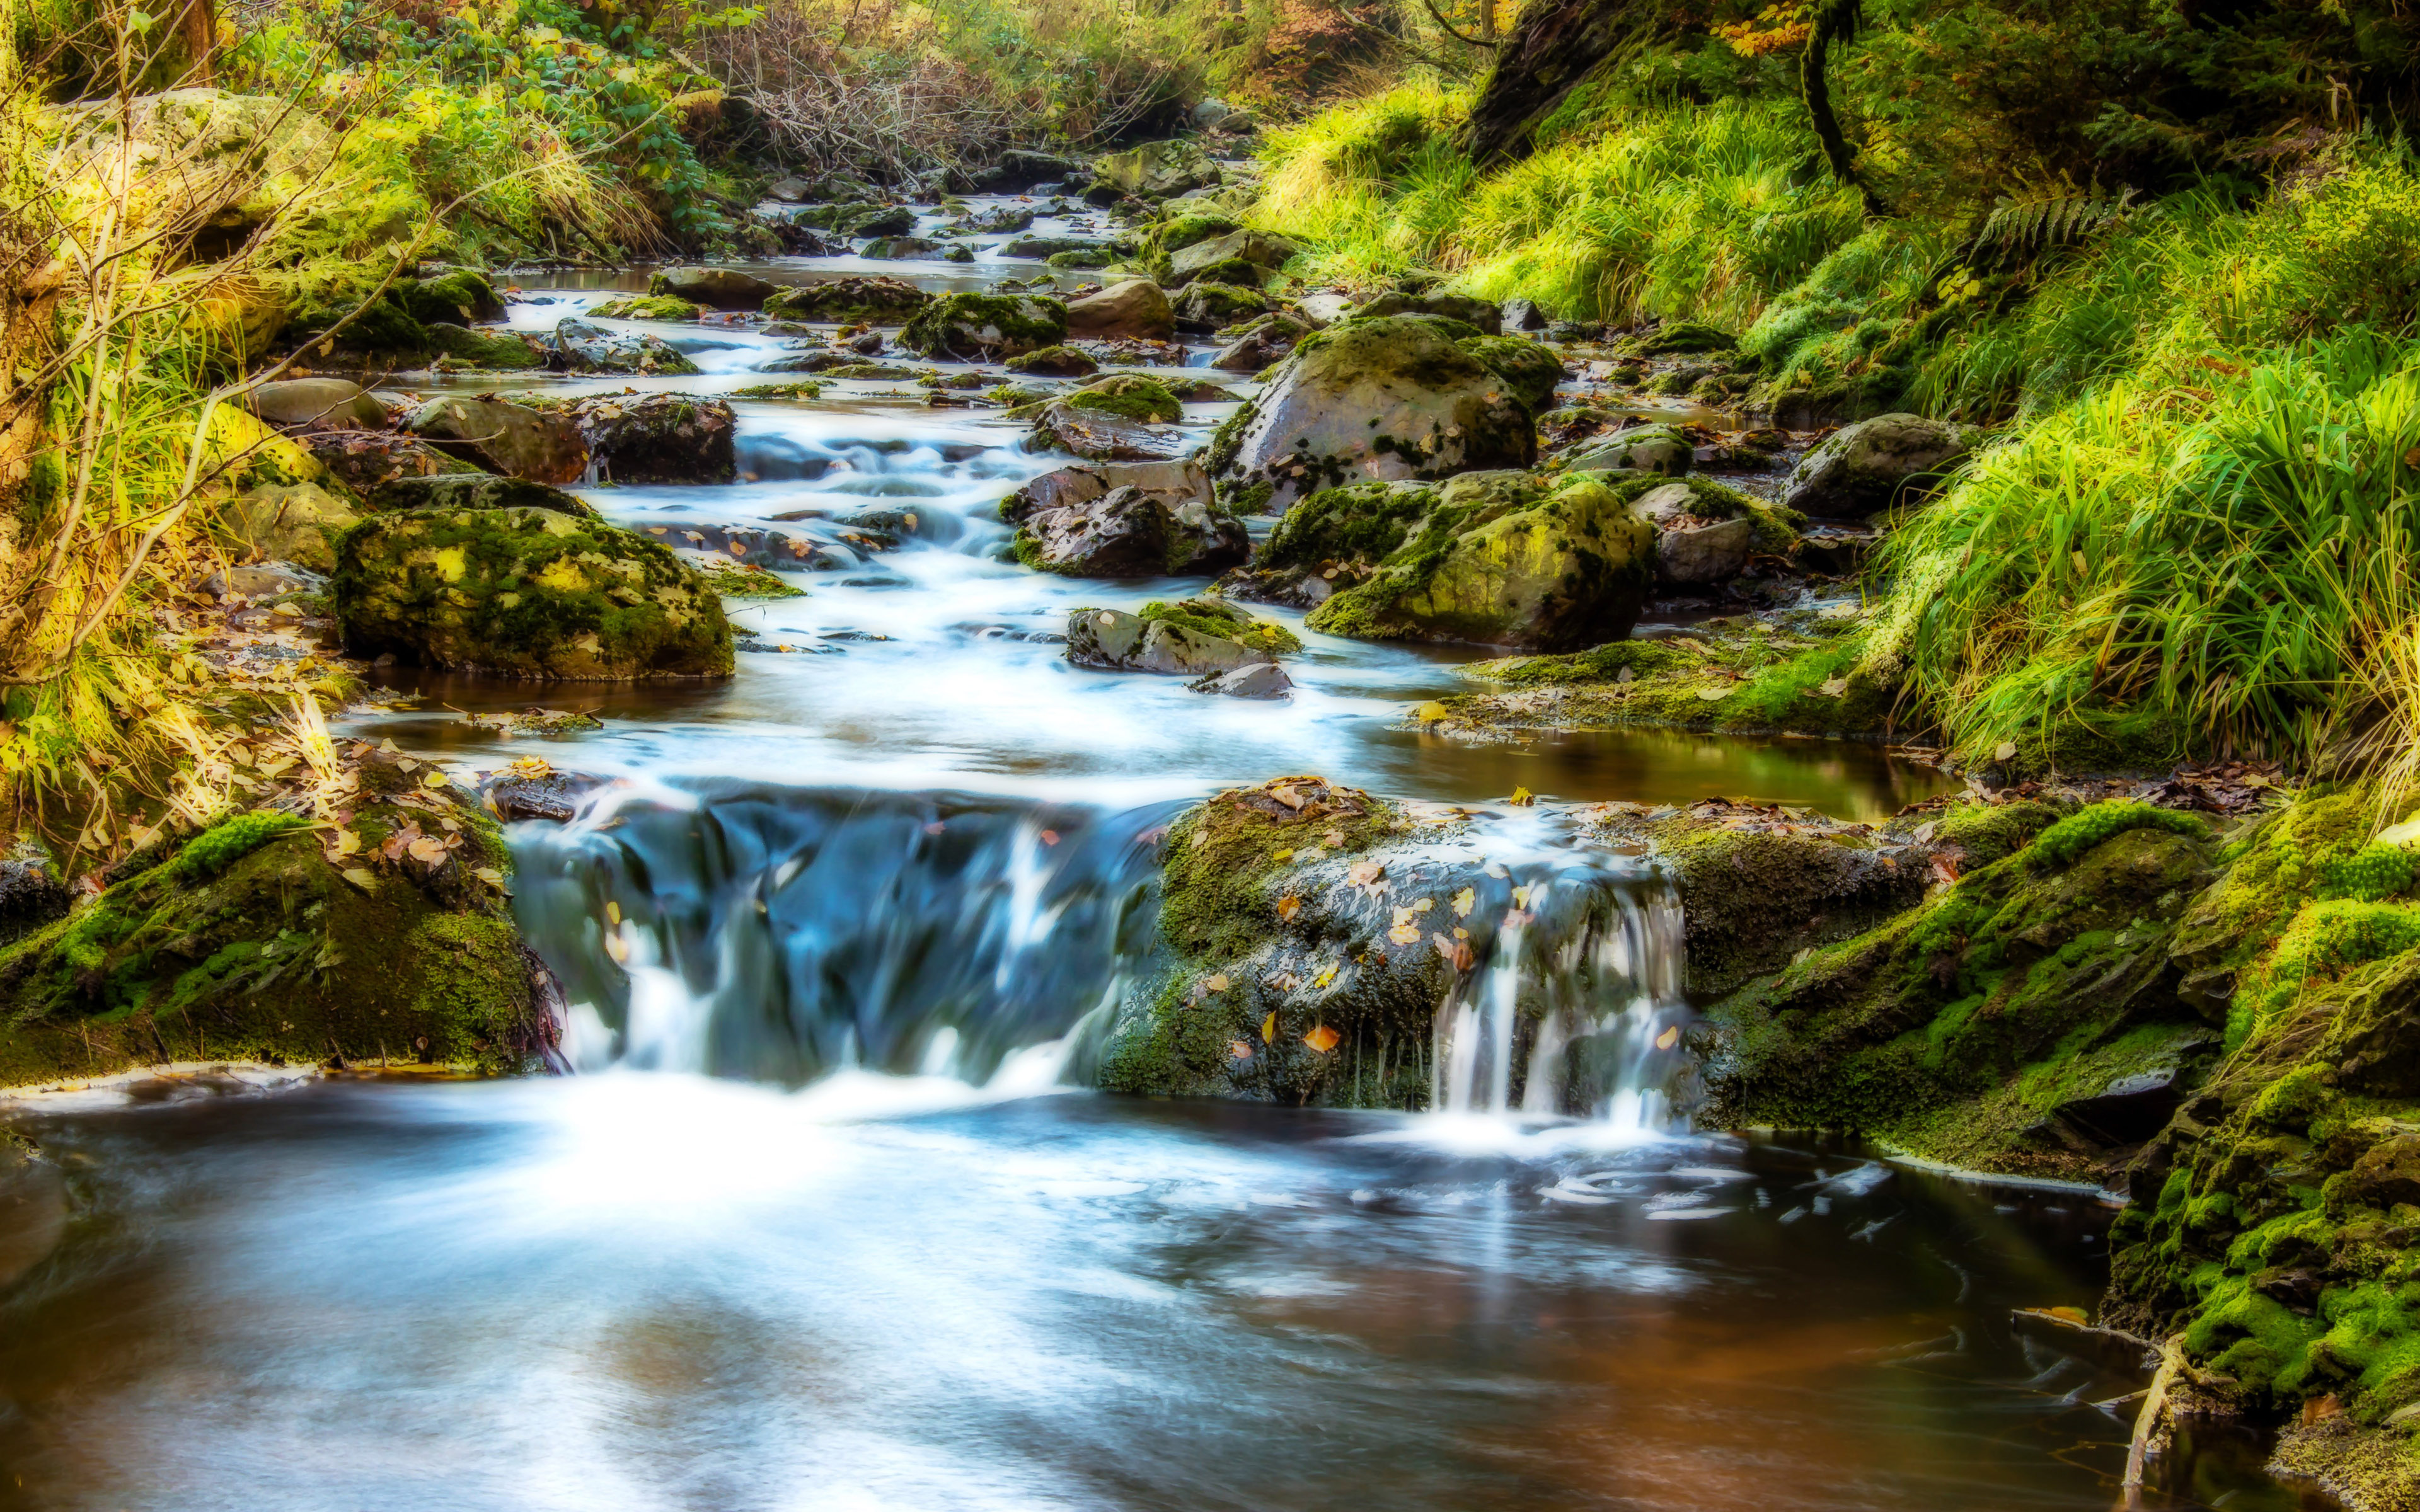 Animated Waterfalls Wallpapers Free Download Mountain Stream Water Rocks Rocks Green Moss Grass Forest